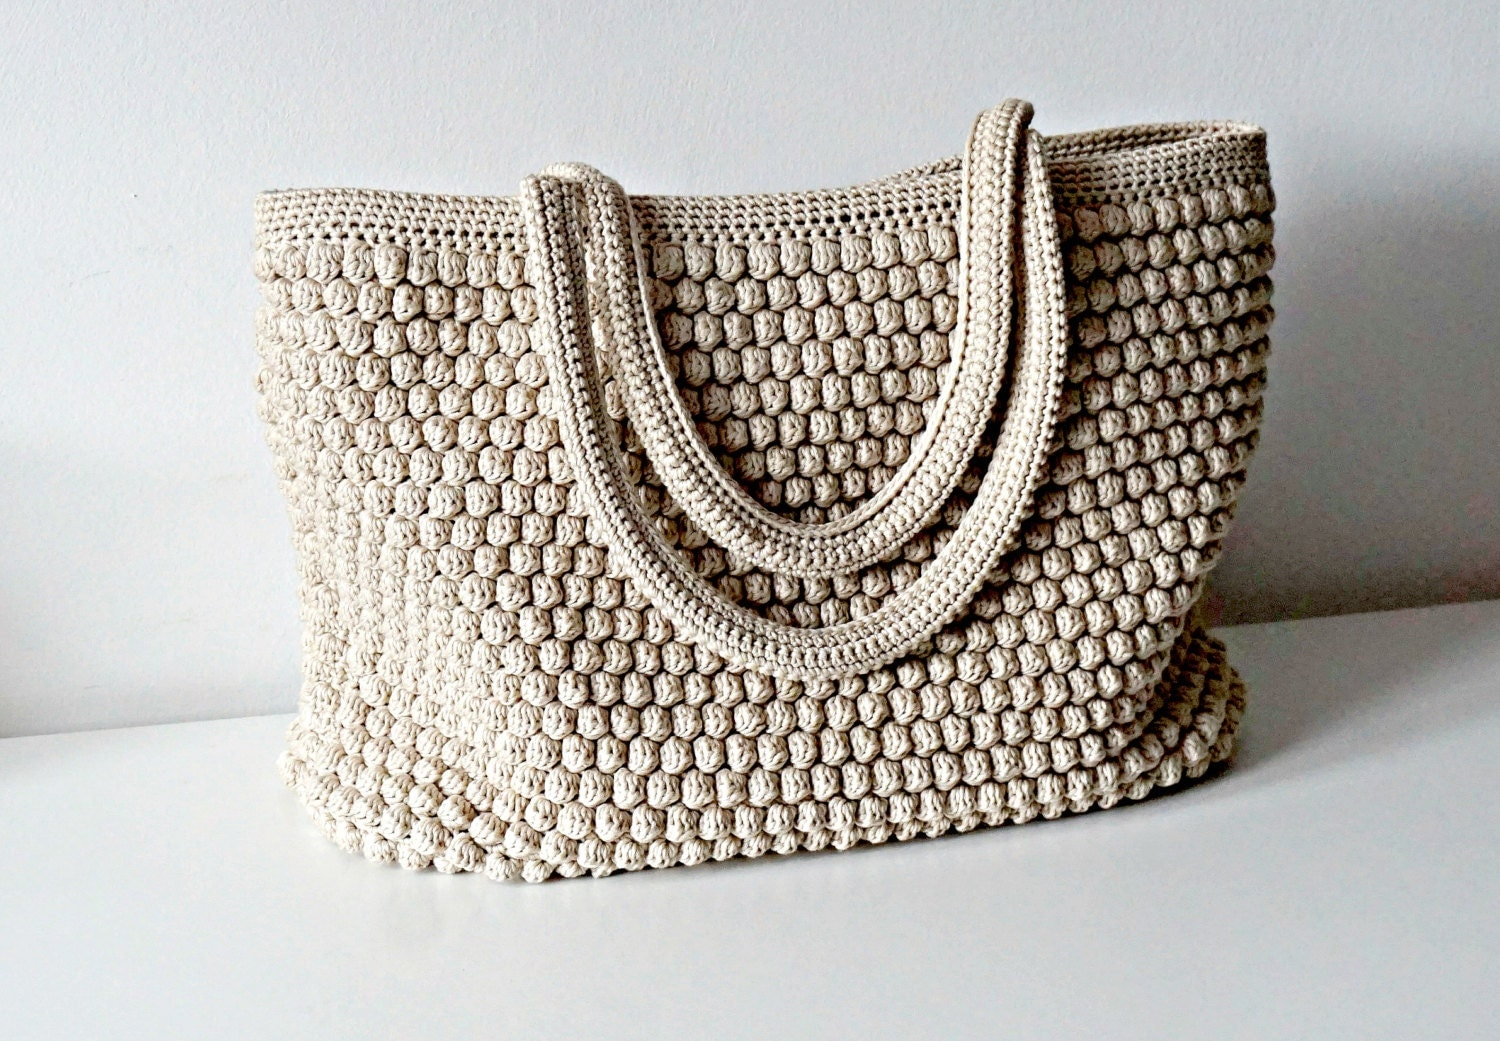 Woolen Crochet Purse : Crochet Tote Bag in 48 colors soft crochet purse by isWoolish